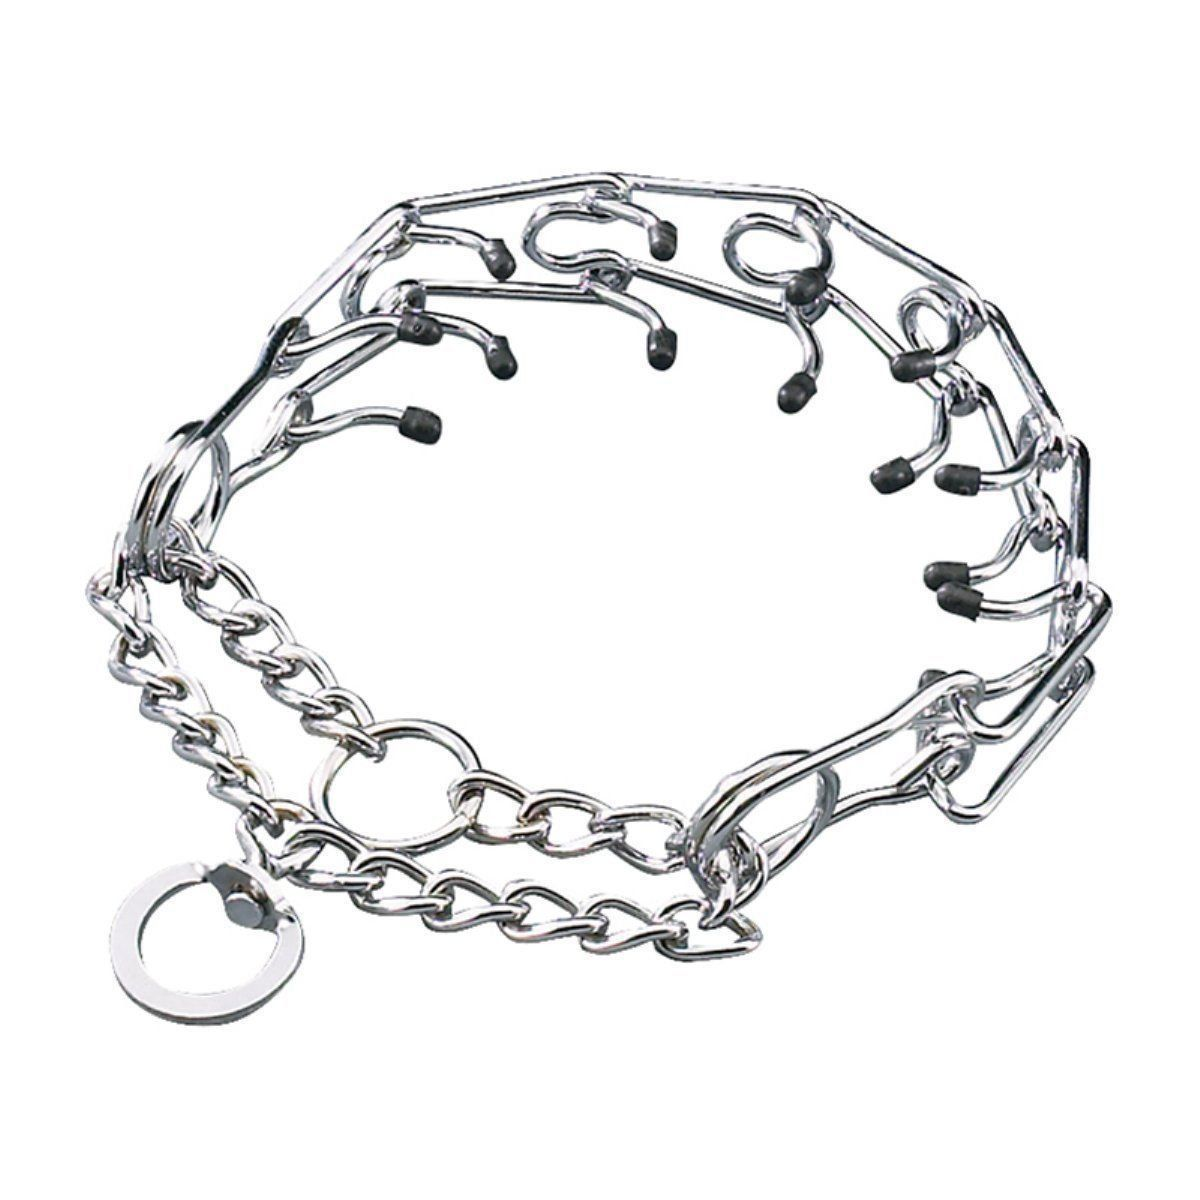 Pettom Gear Chrome Plated Steel Dog Prong Collar Want